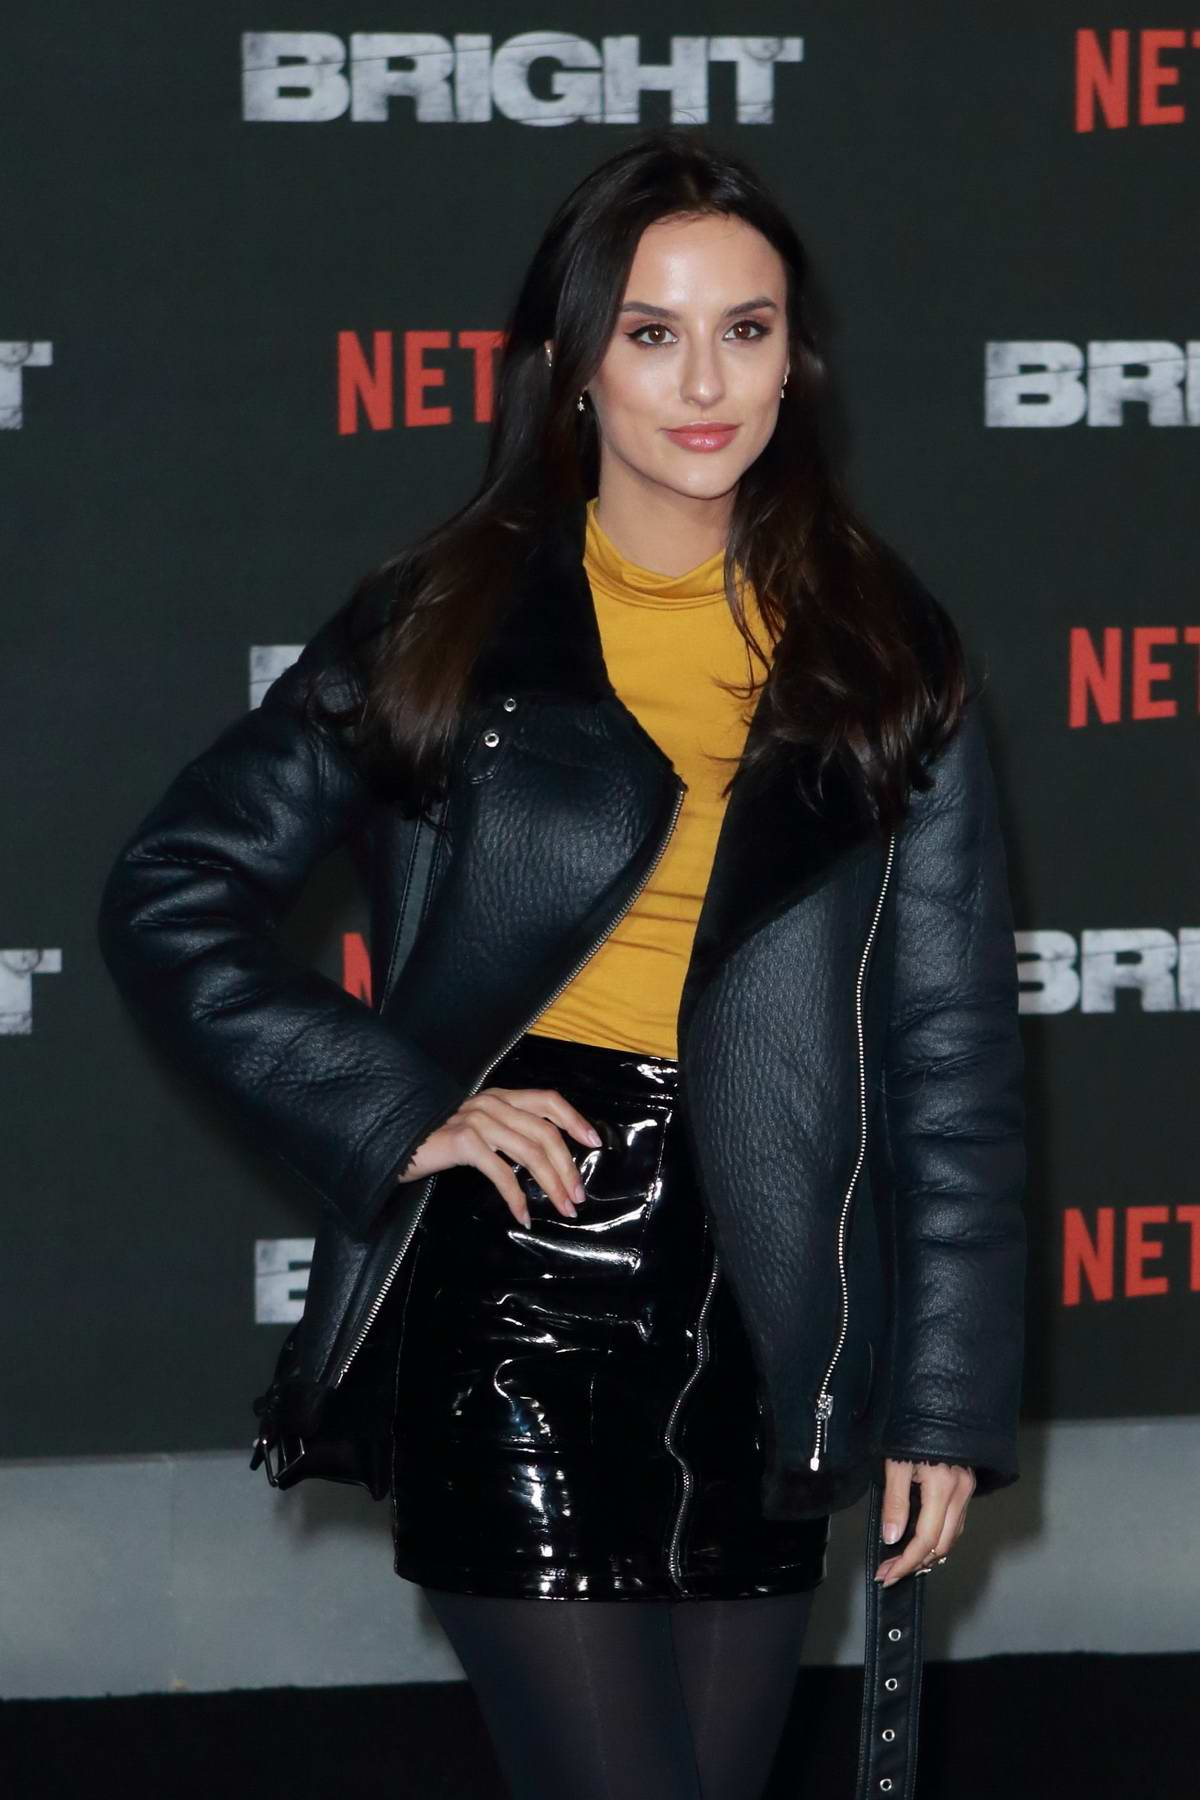 Lucy Watson at UK film premiere of 'Bright' held at BFI Southbank in London